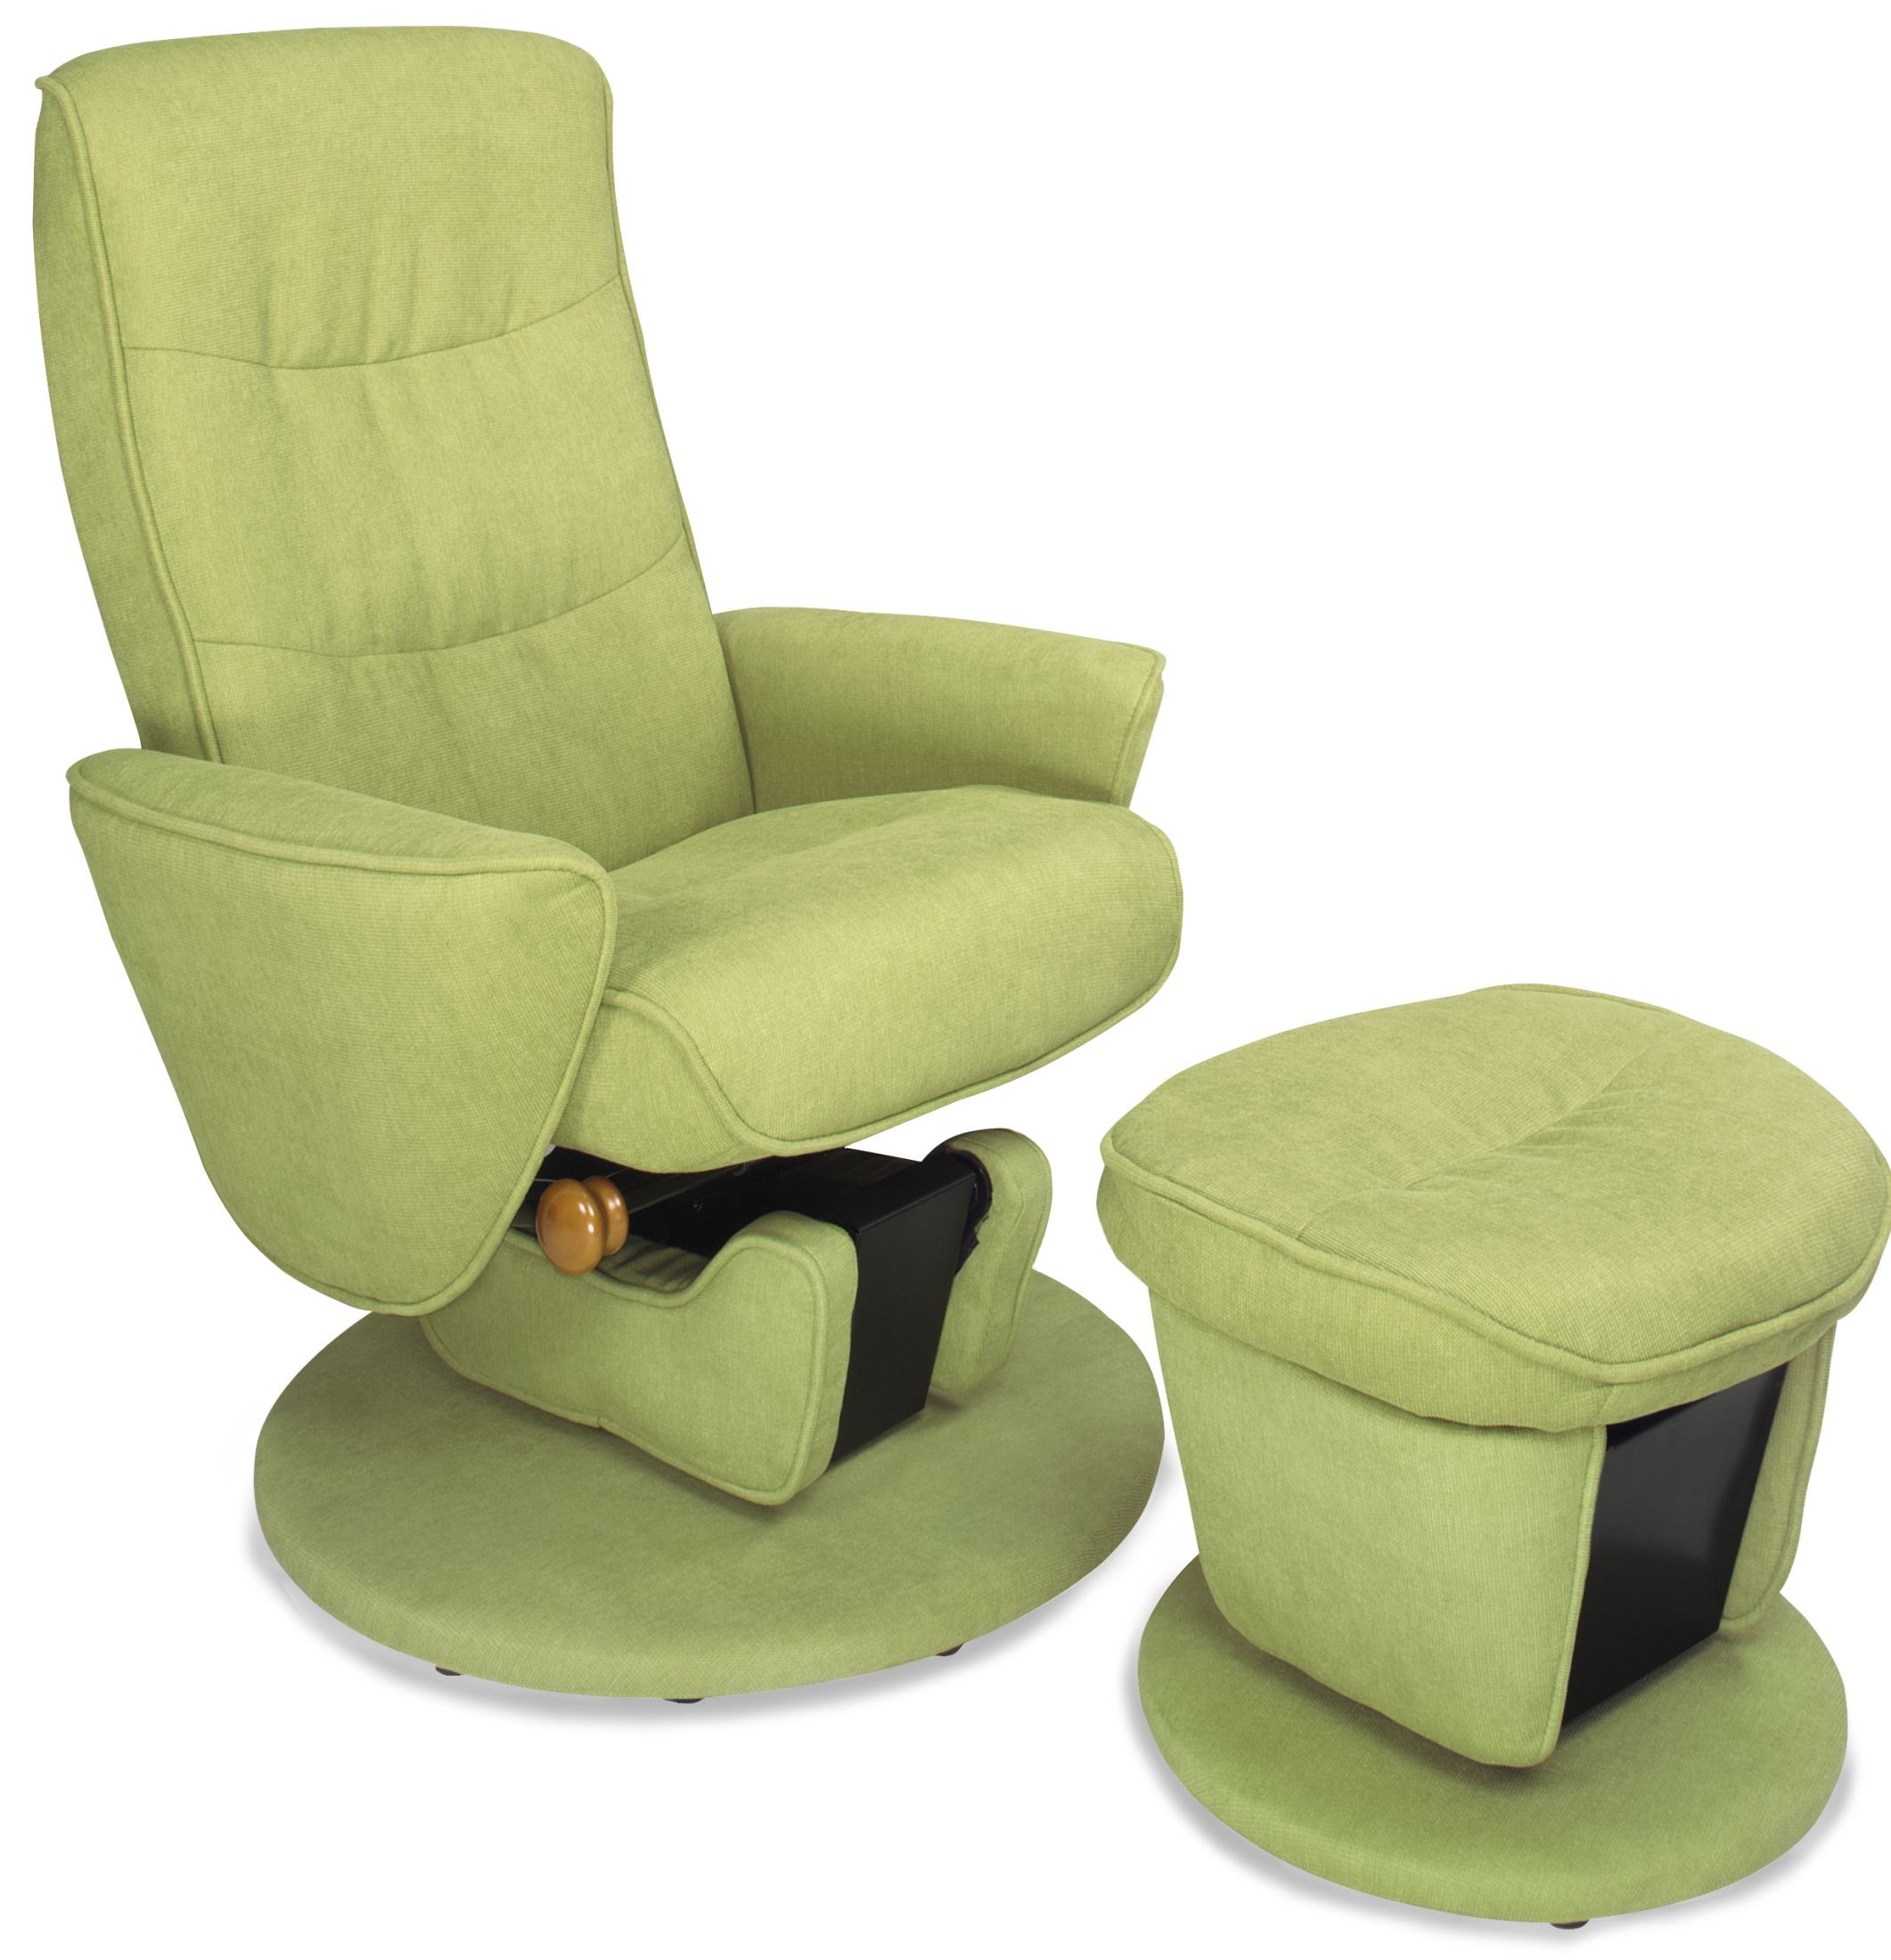 glider recliner chair with ottoman 1930s rocking fabric relax r leaf green